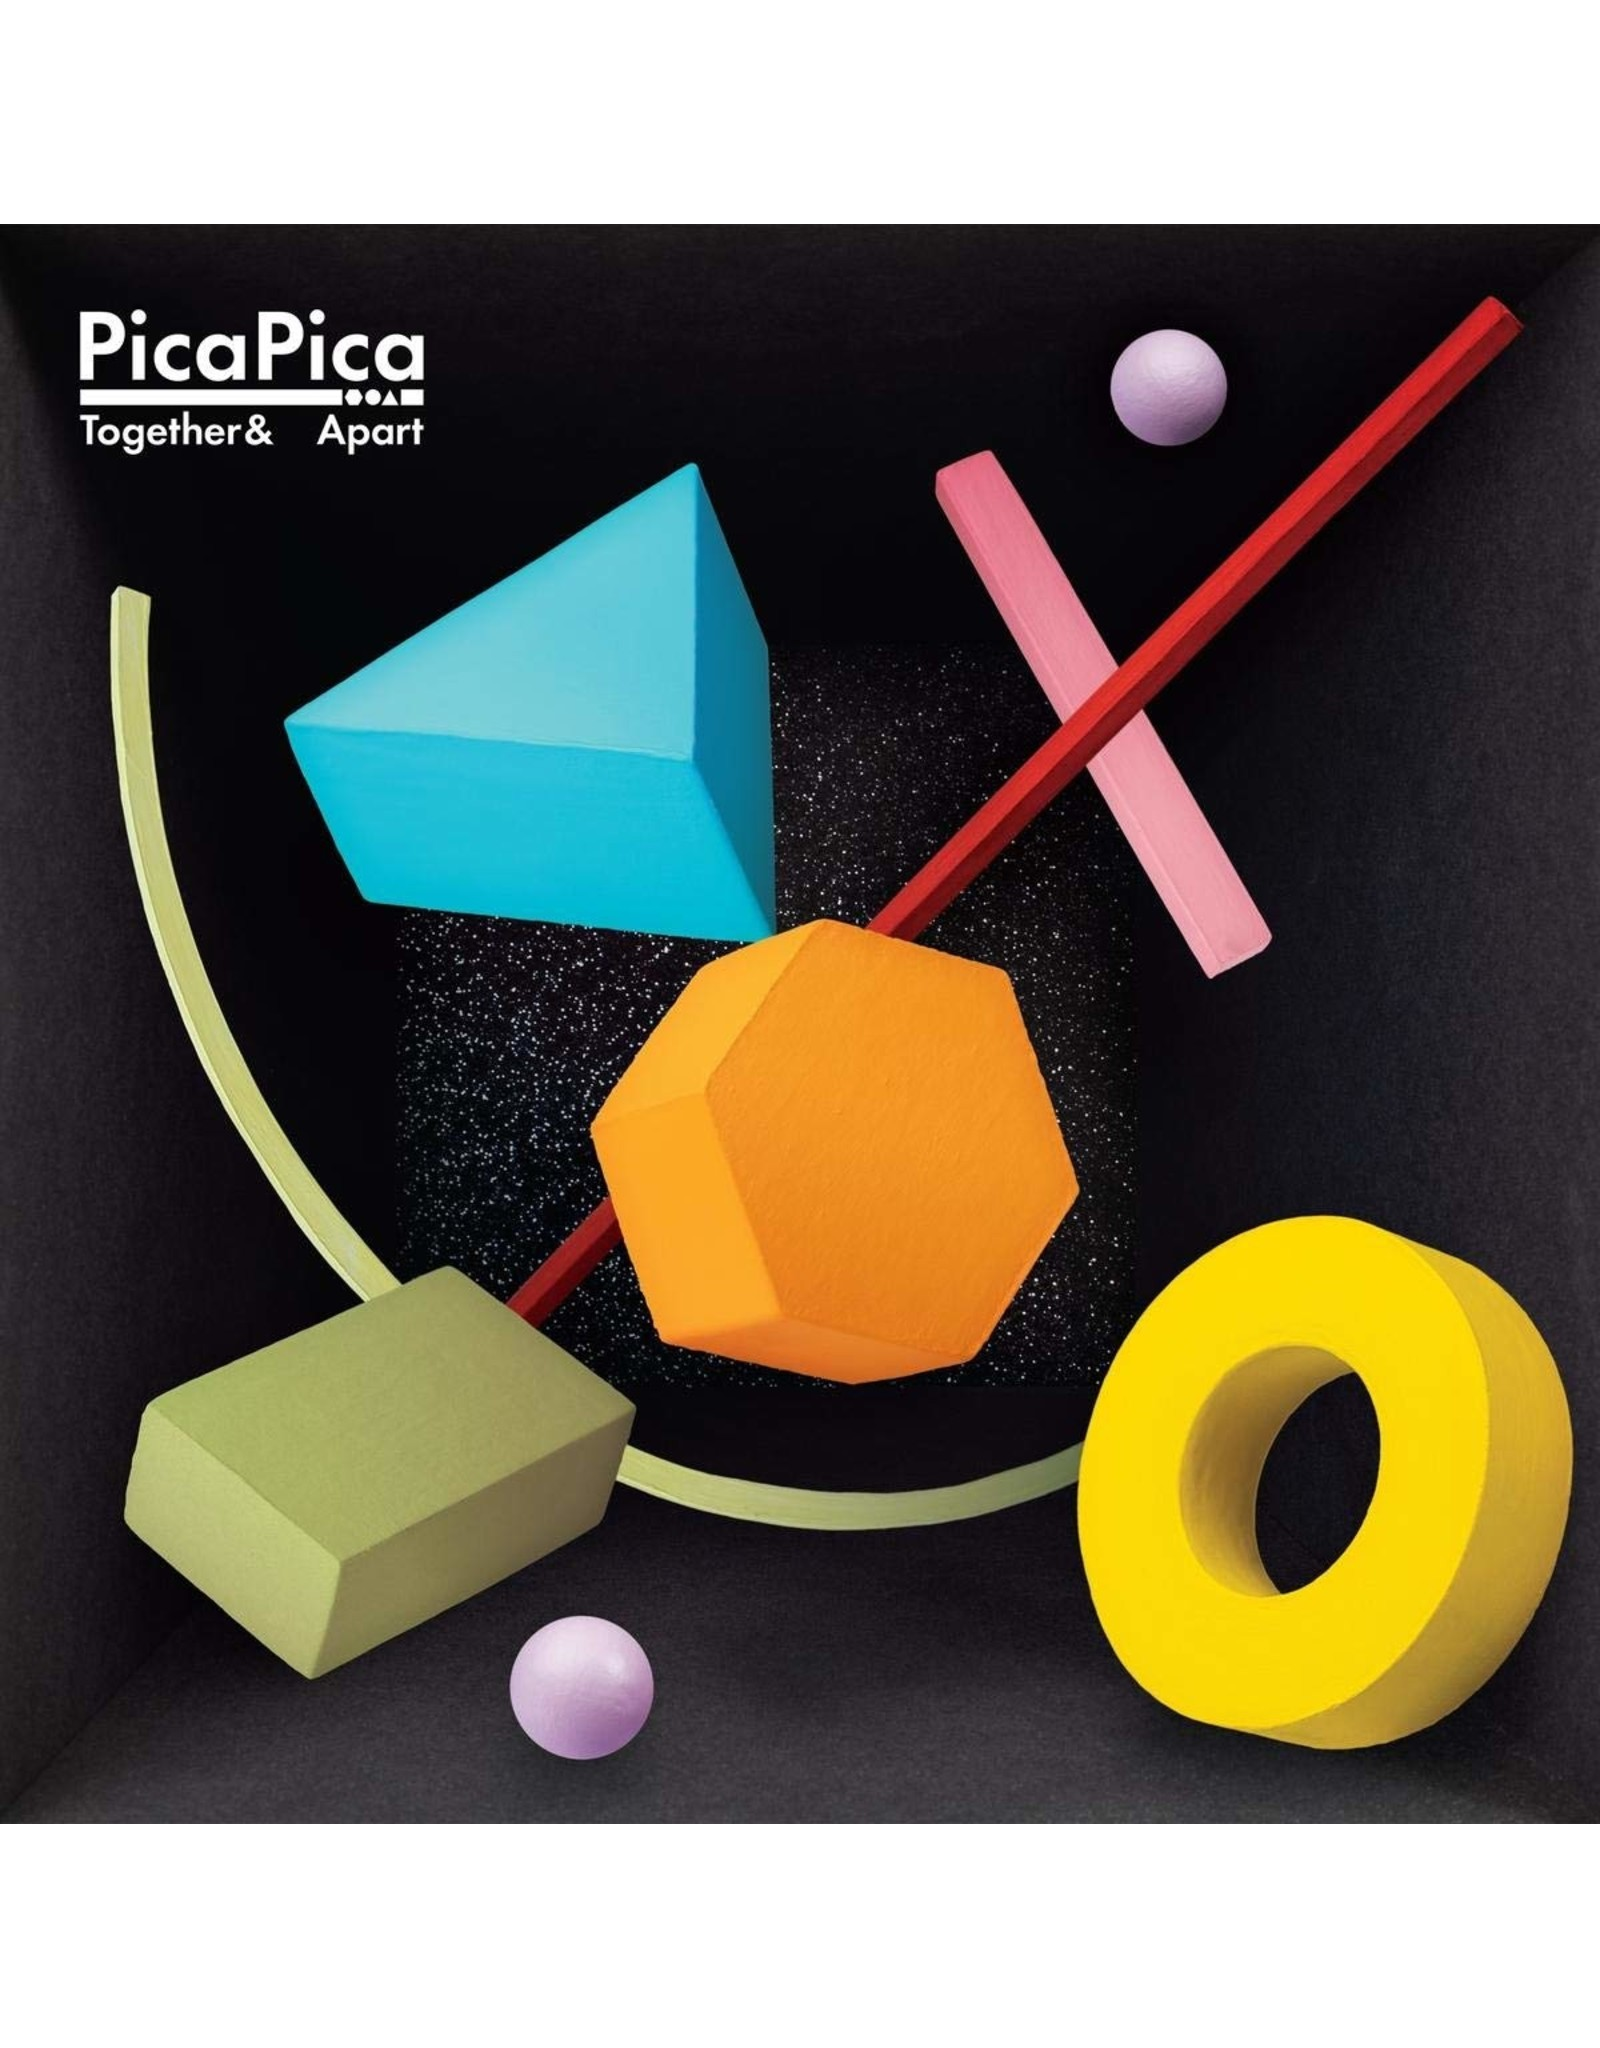 New Vinyl Pica Pica - Together & Apart LP